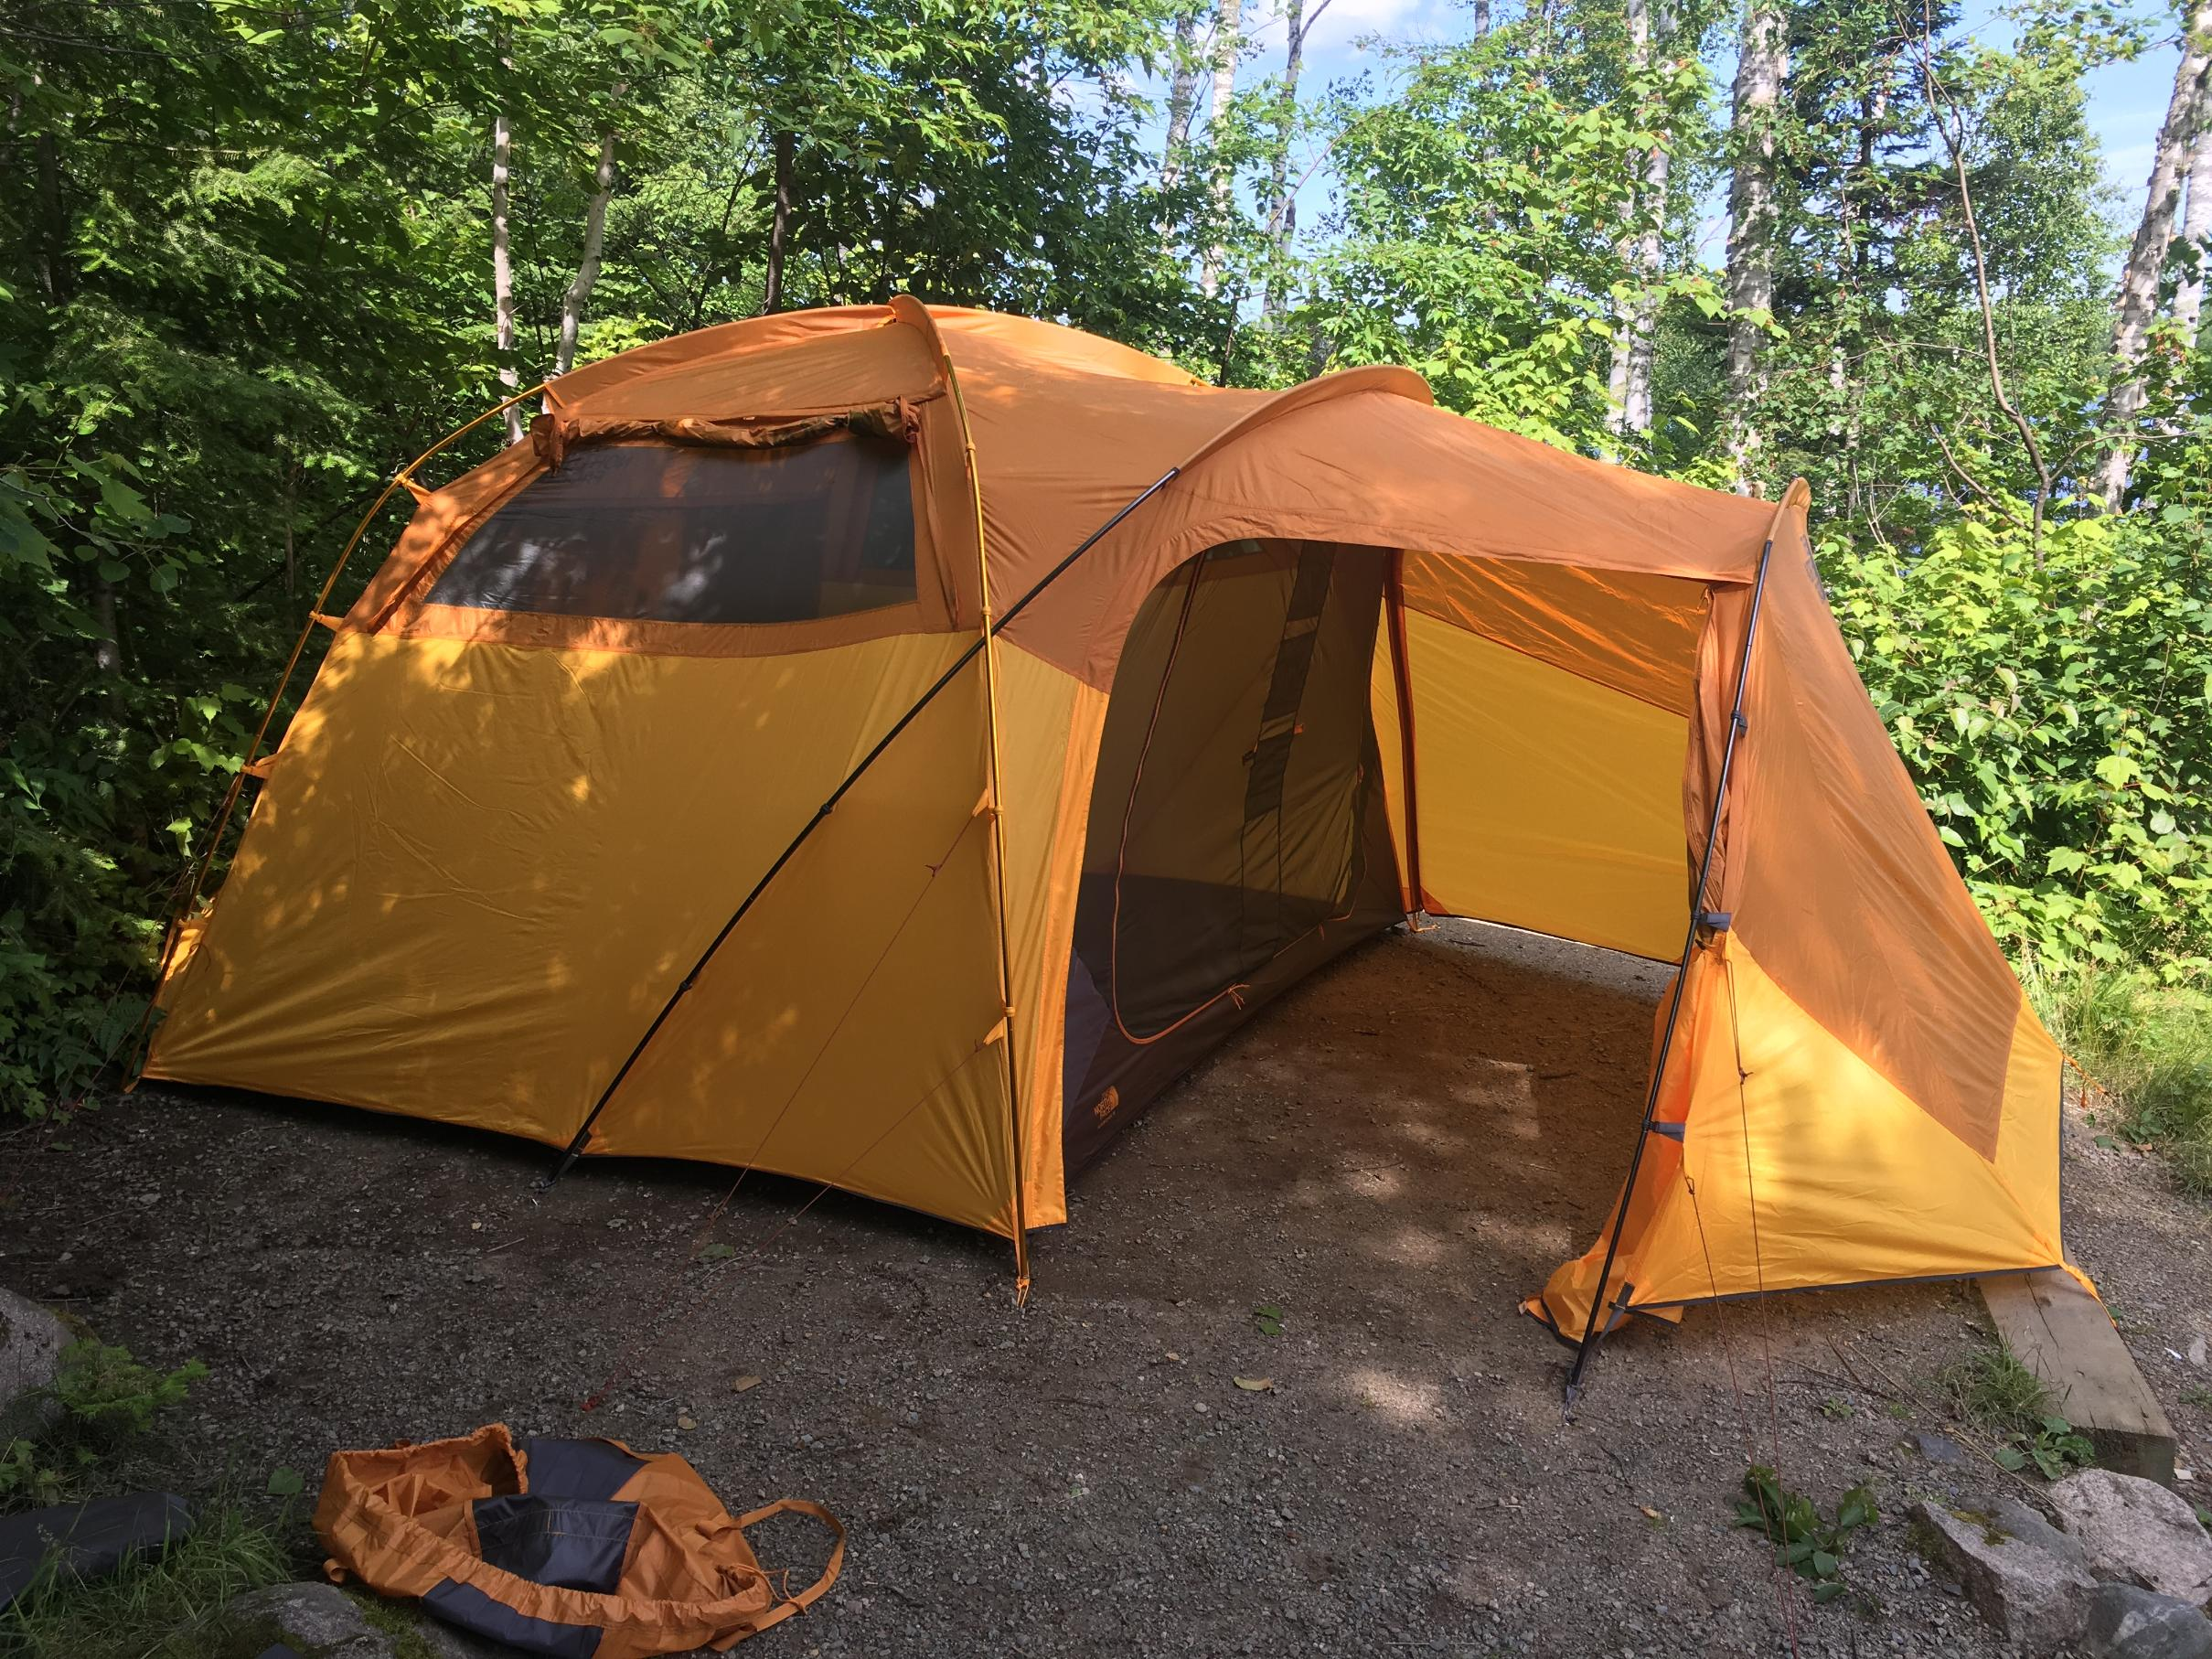 North Face Wawana 6 person & BWCA Family Car Camping Tent? Boundary Waters Gear Forum